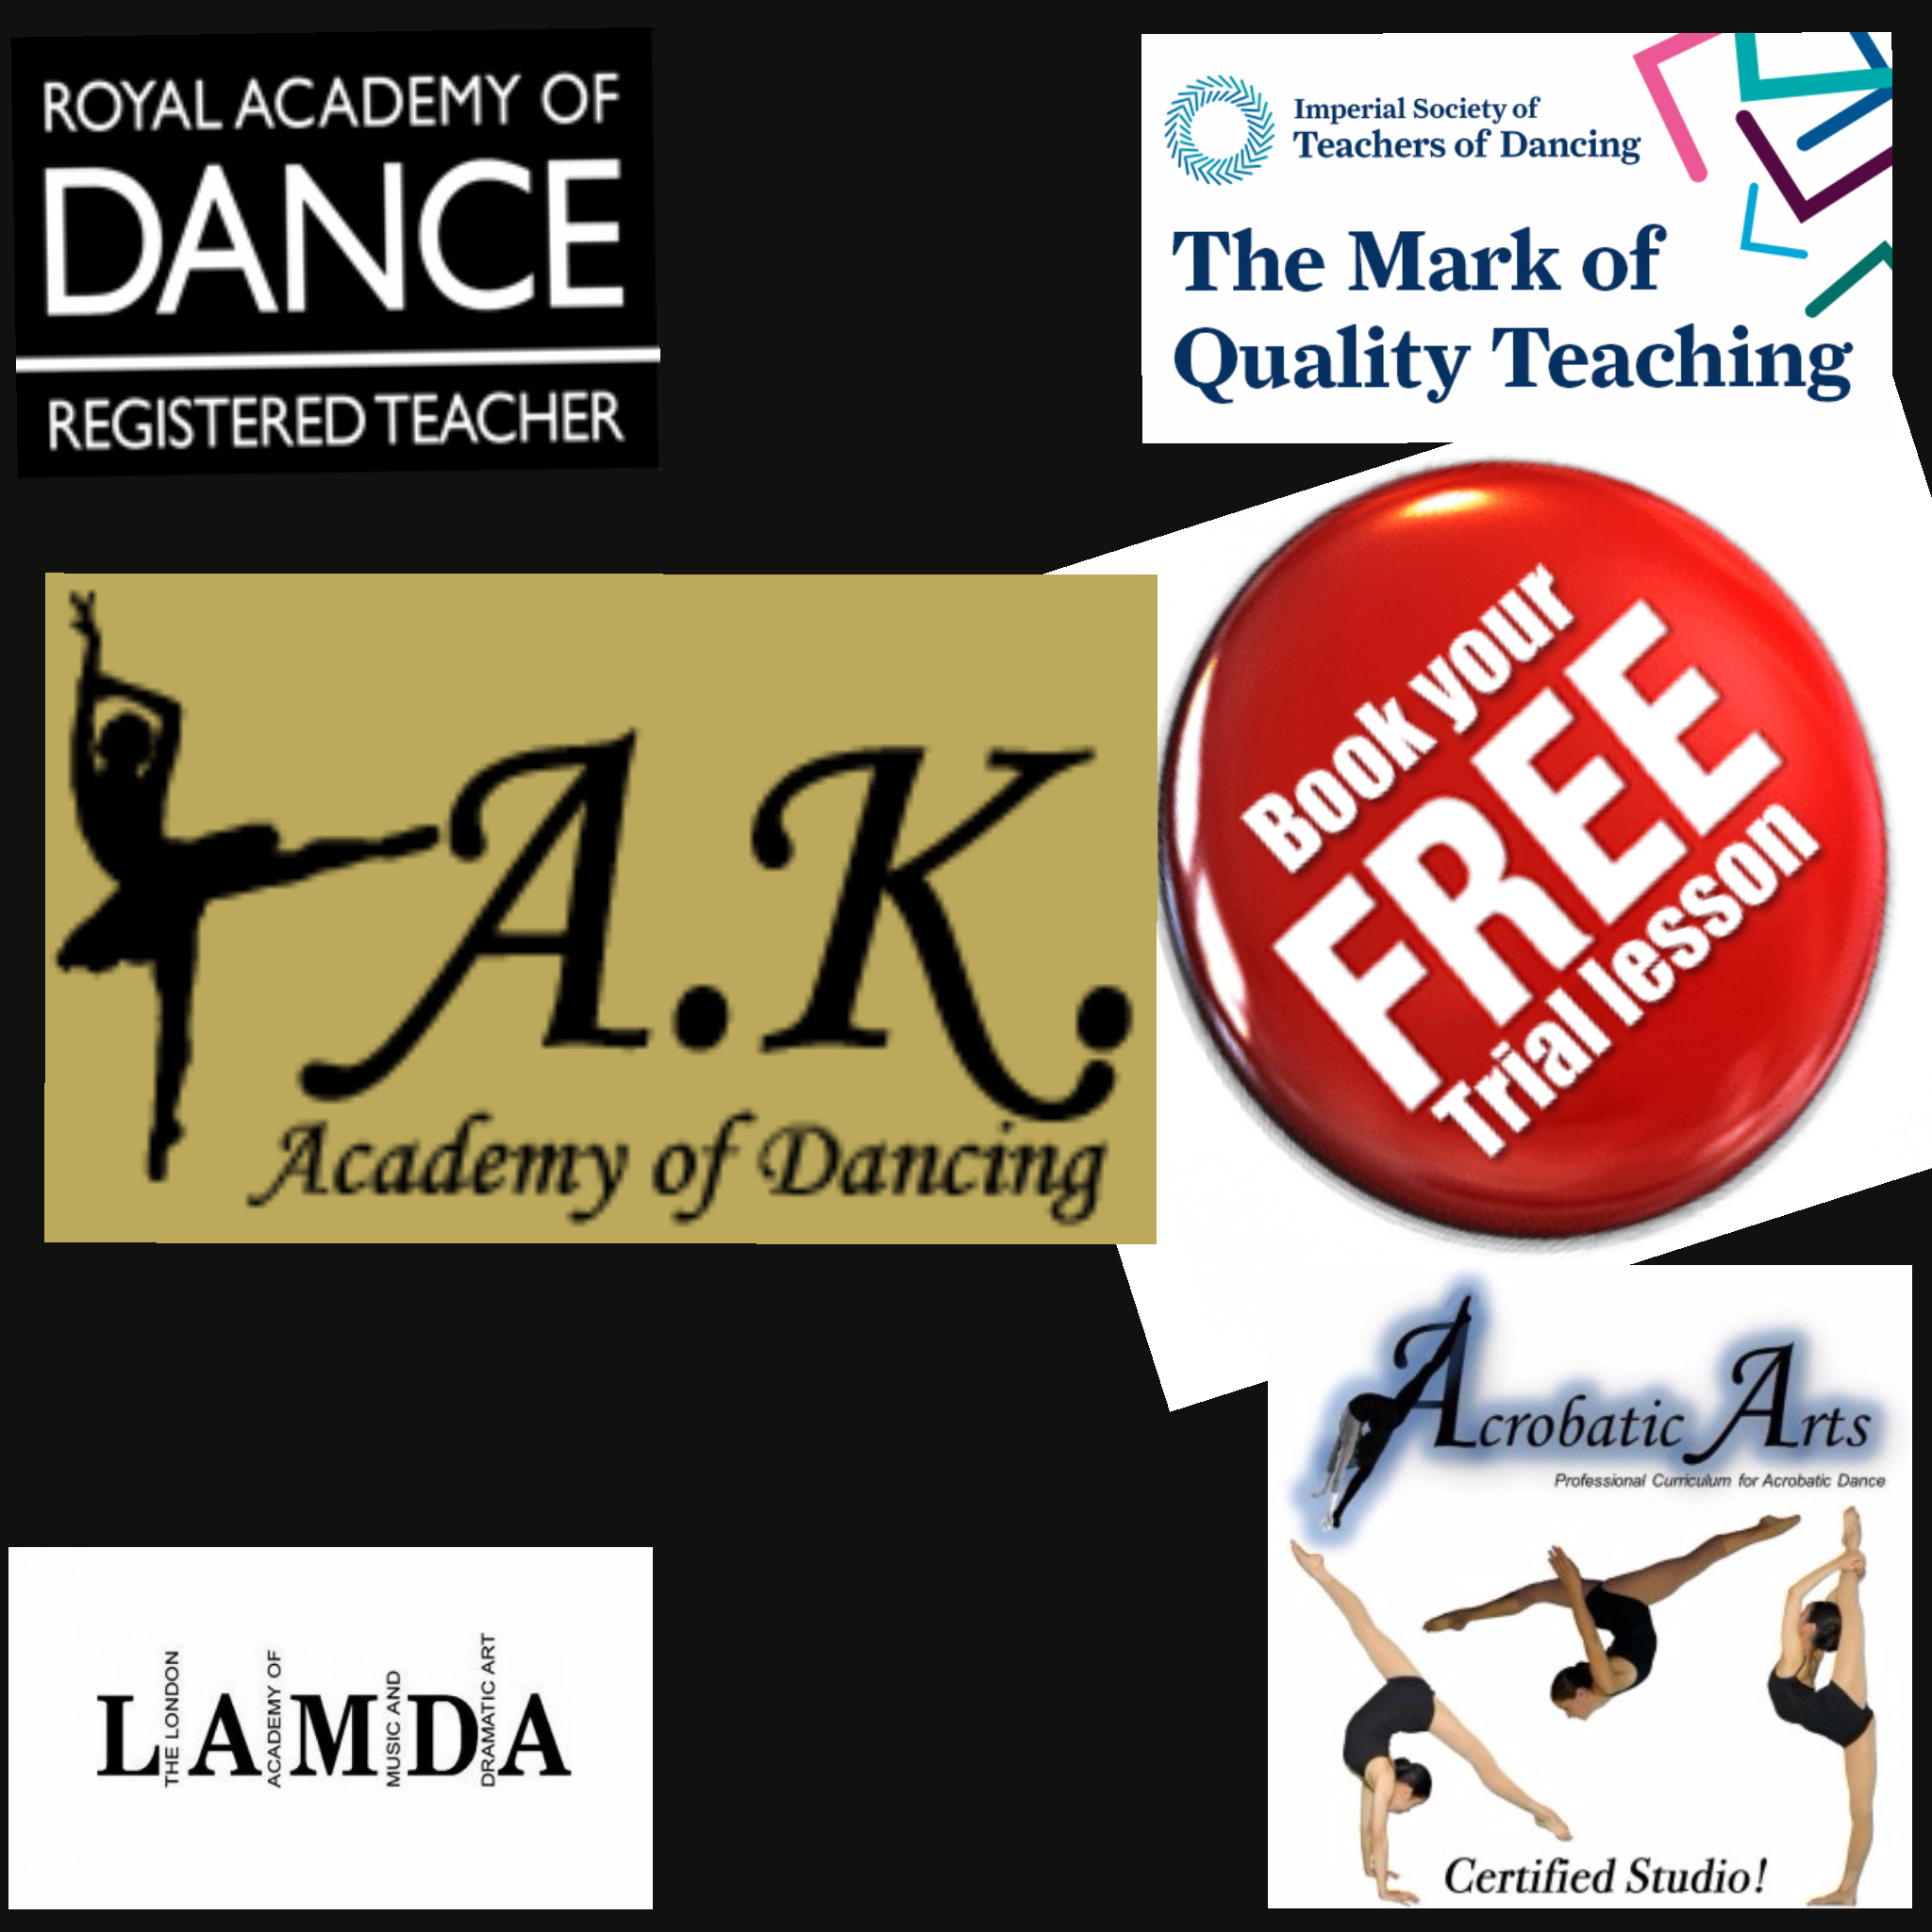 AK Academy of Dancing